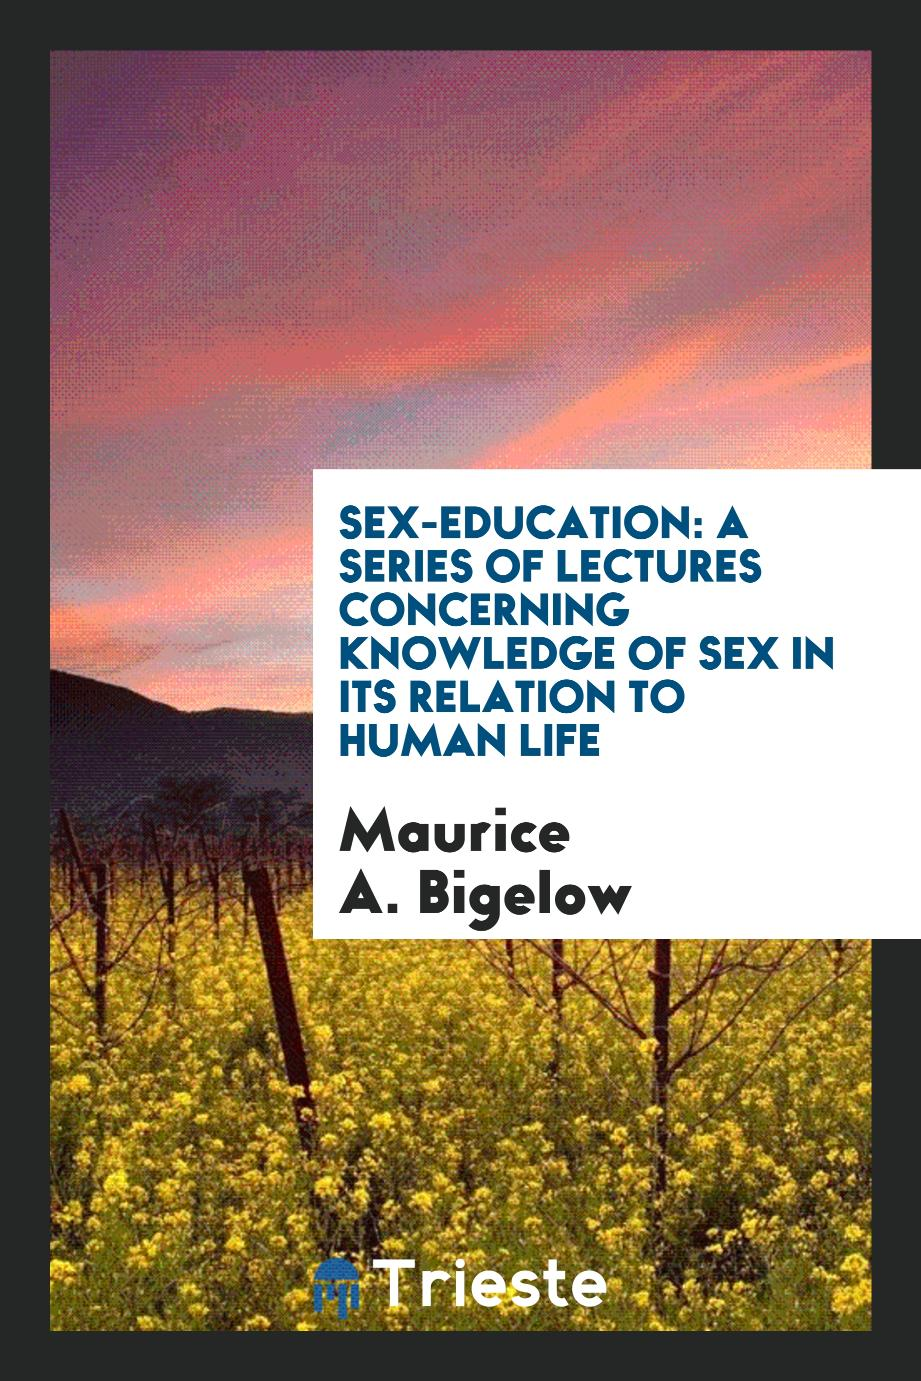 Sex-education: a series of lectures concerning knowledge of sex in its relation to human life